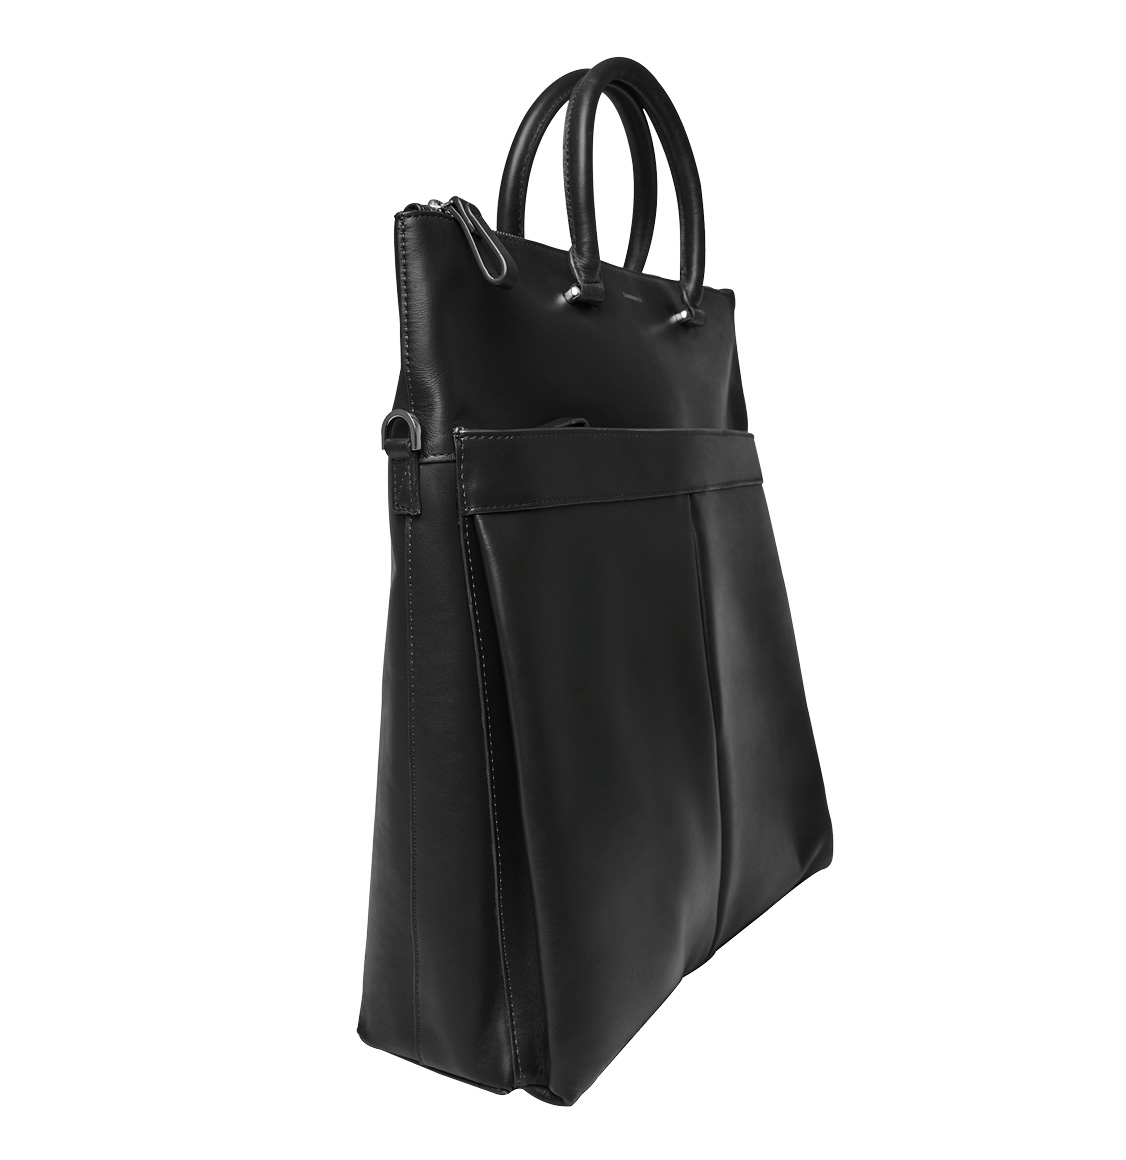 Sandqvist Andreas Black Tote Bag